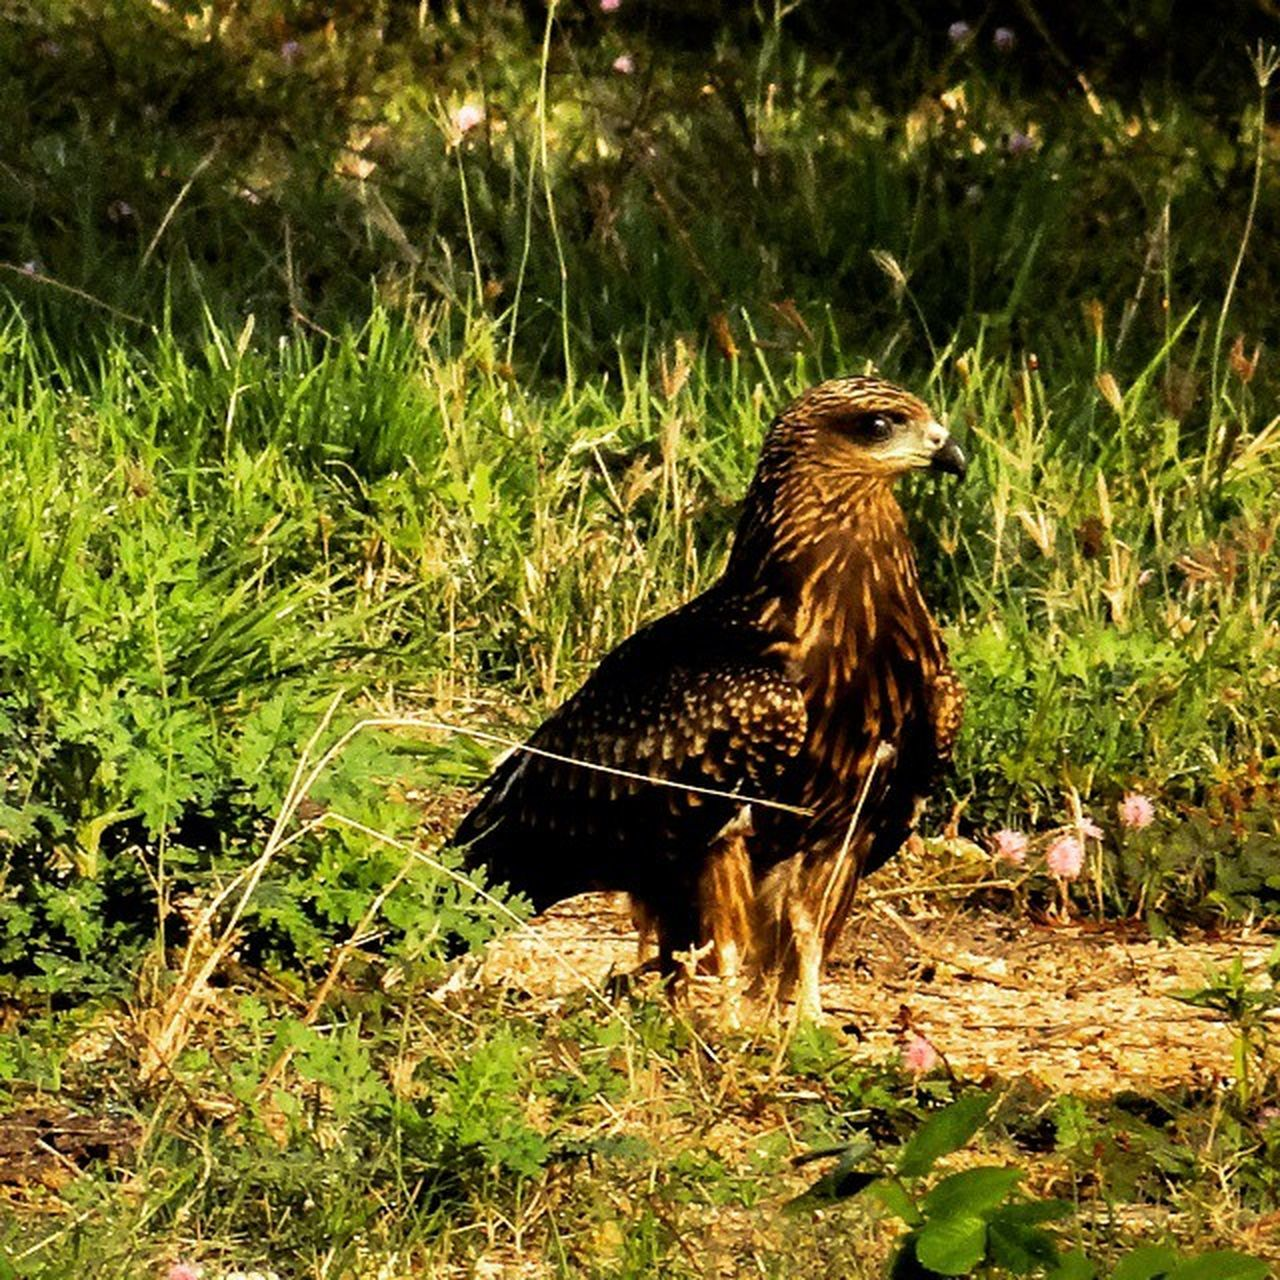 bird, one animal, grass, animal themes, field, no people, animals in the wild, plant, outdoors, day, bird of prey, nature, domestic animals